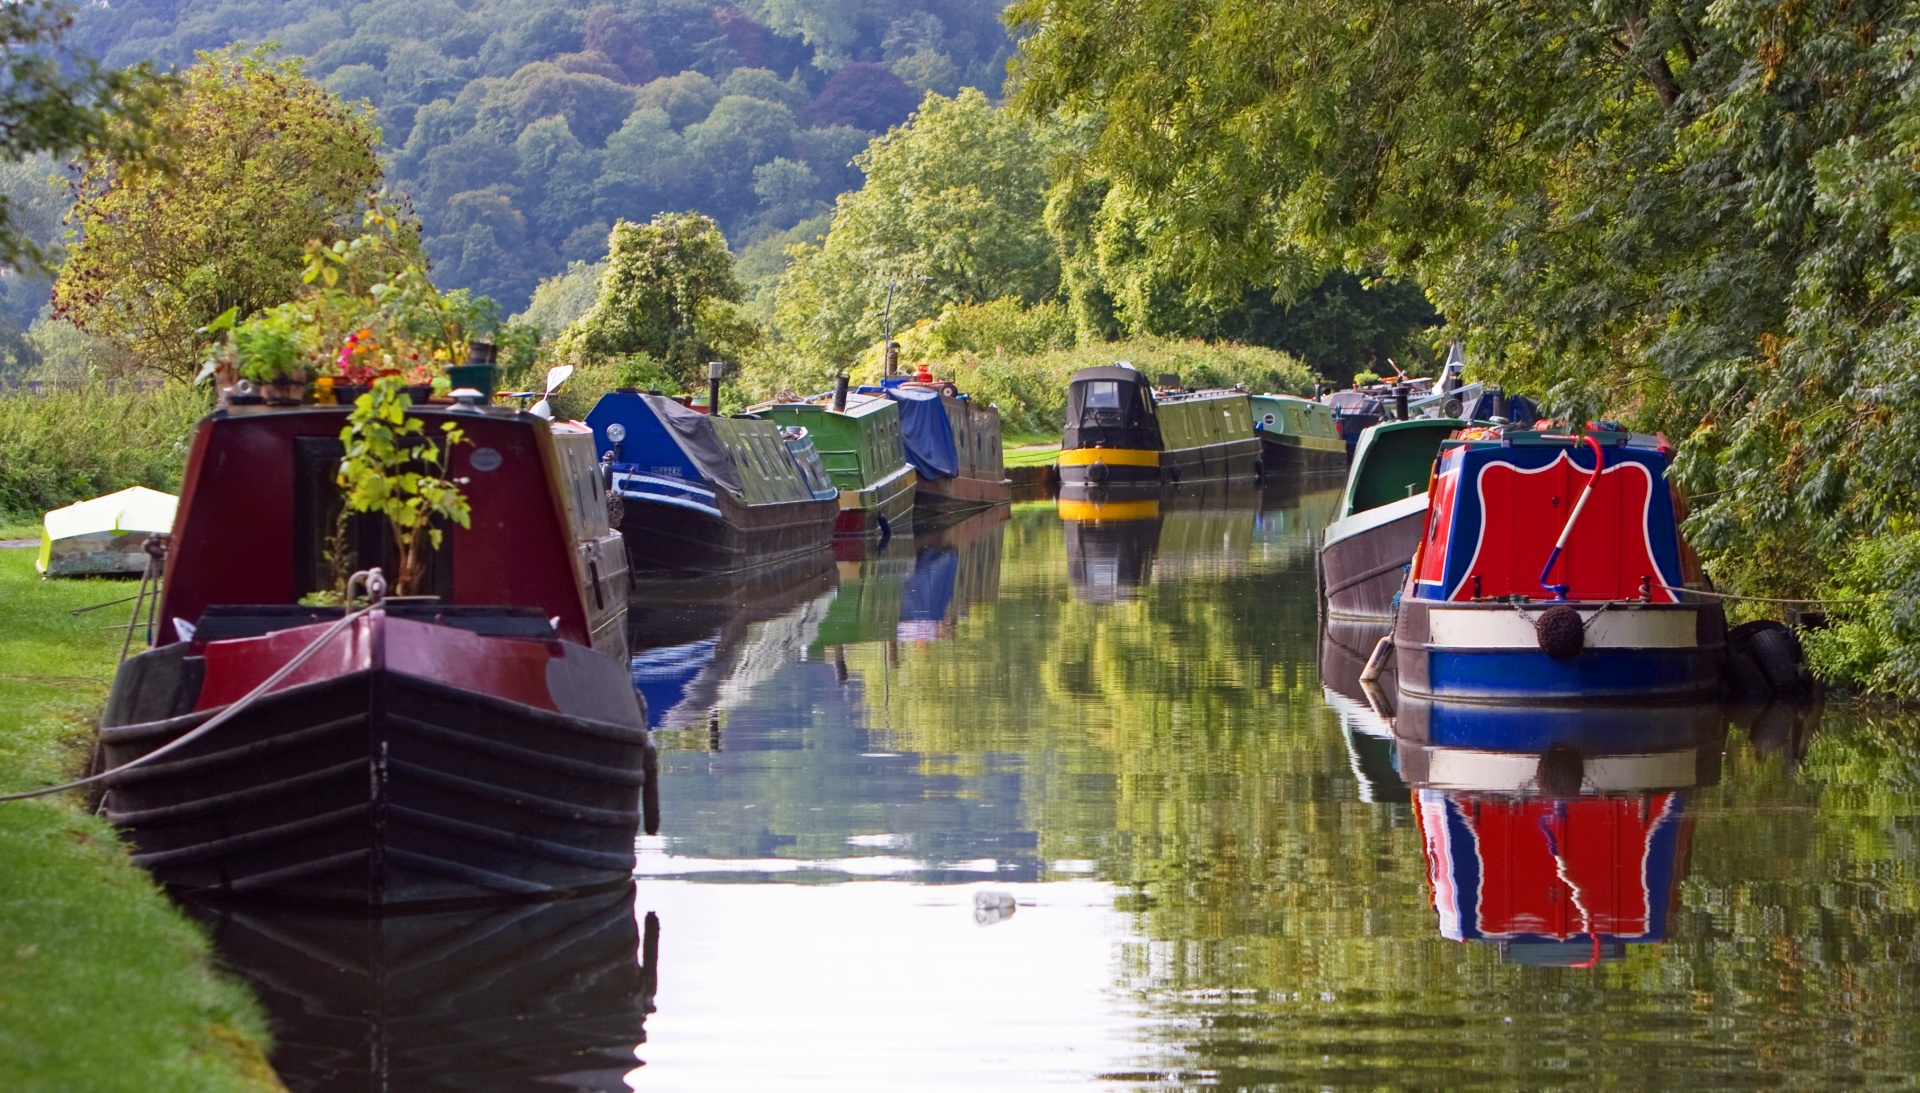 Boats On River Free Stock Photo - Public Domain Pictures